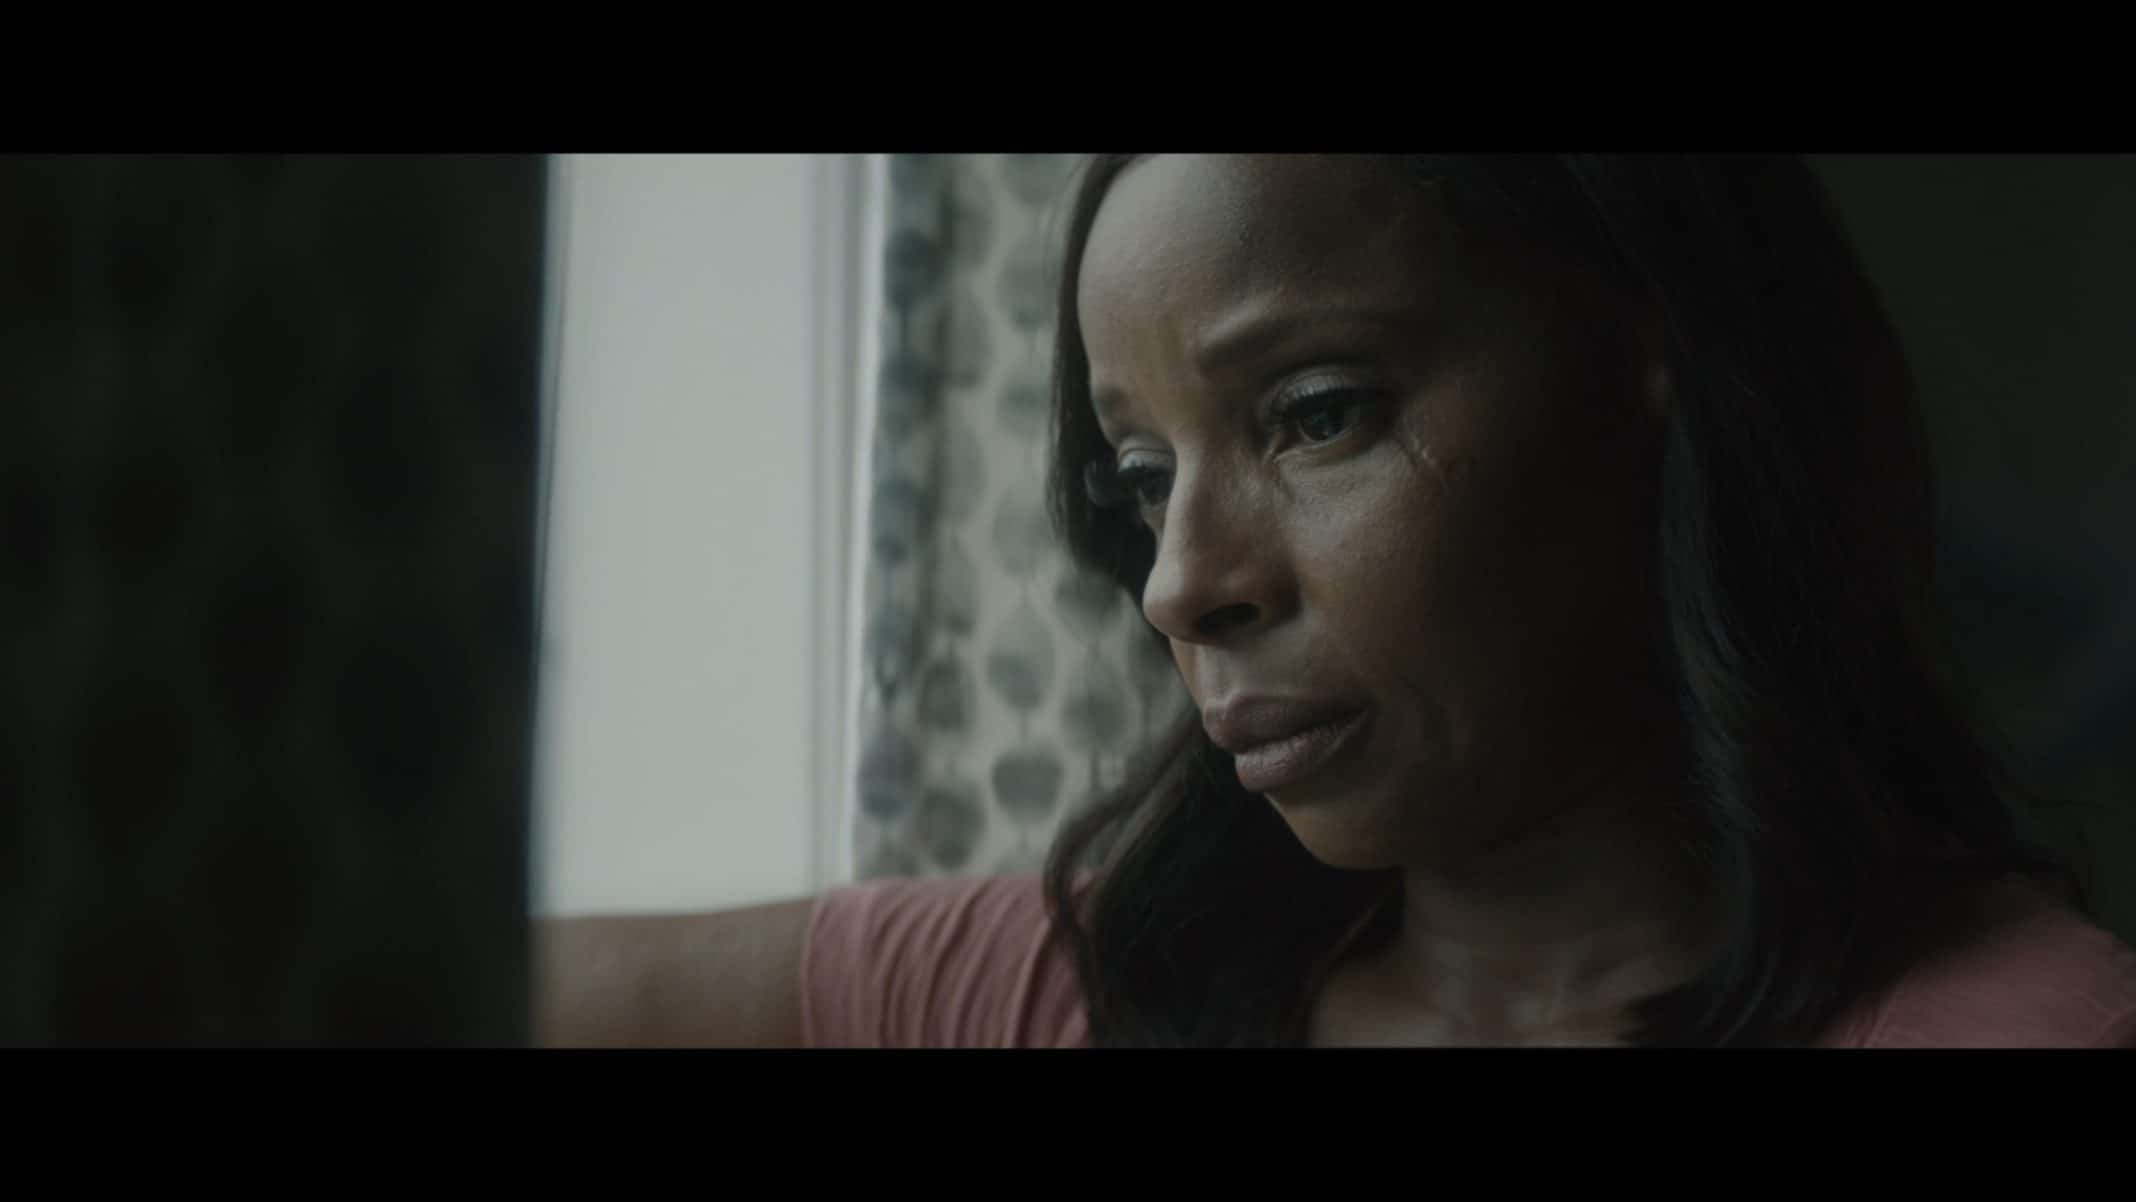 Officer Renee Lomito-Smith (Mary J. Blige) looking out the window.